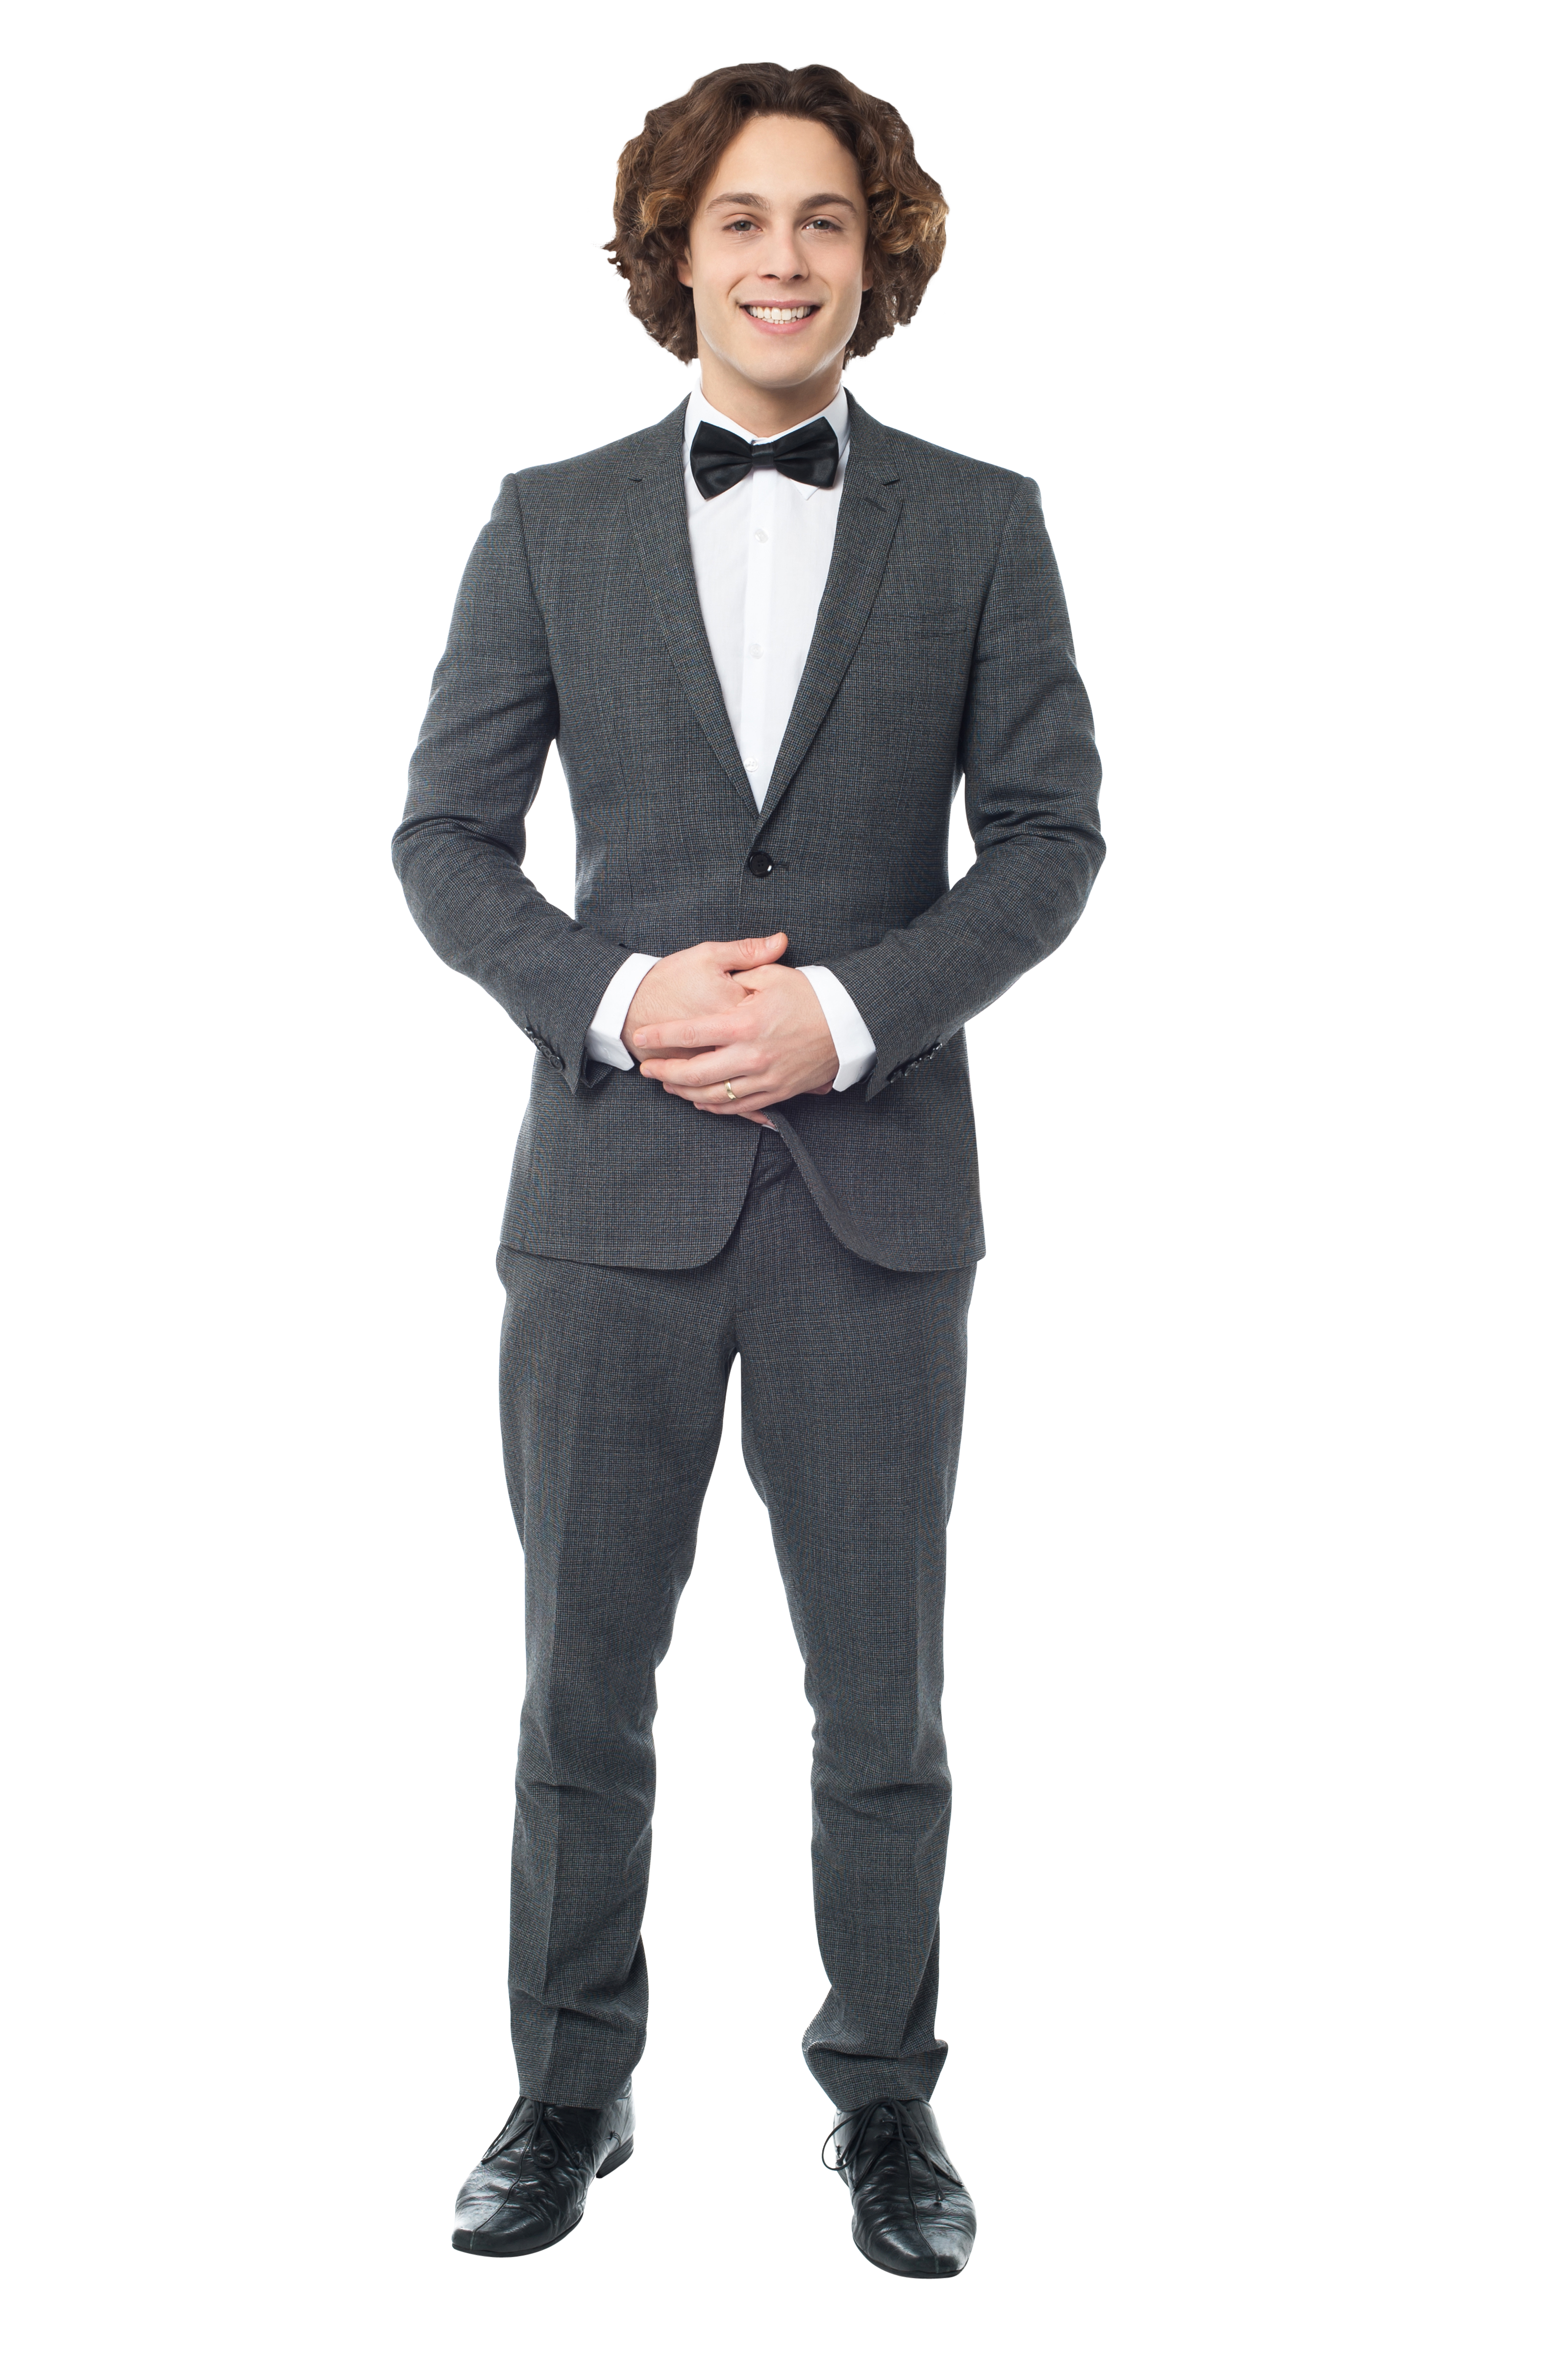 person stock image png